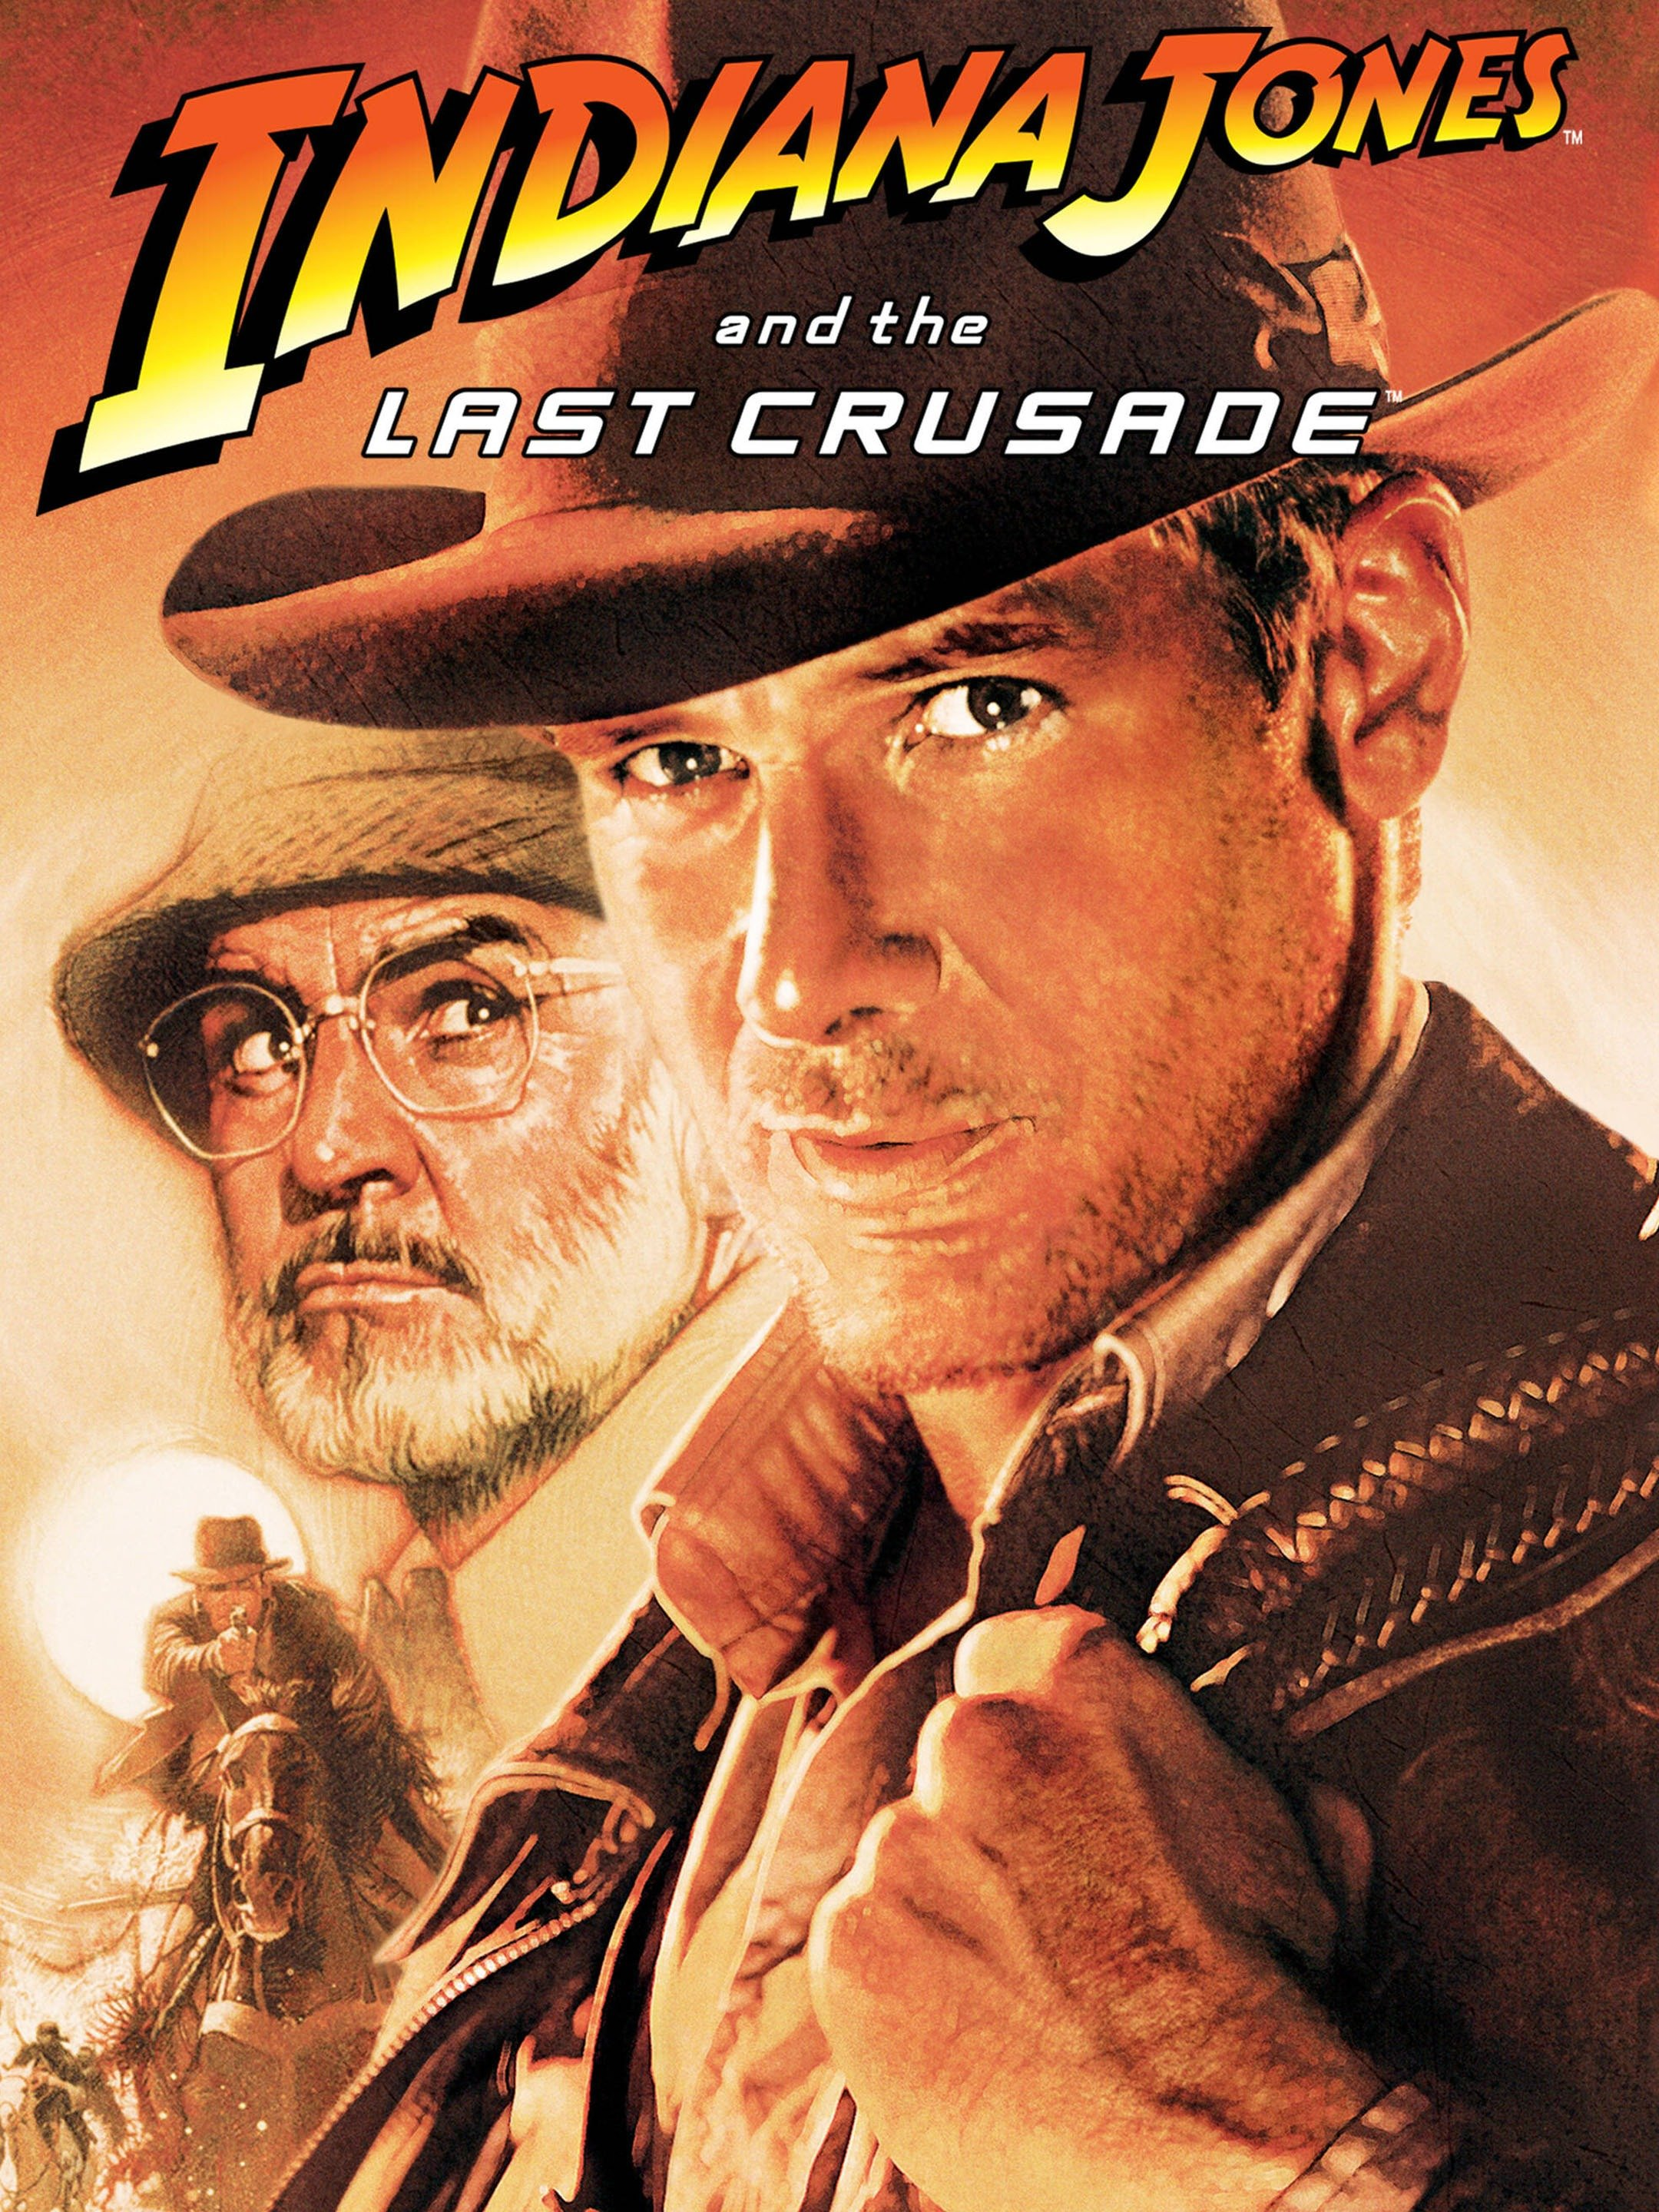 Indiana Jones and the Last Crusade (1989) - Rotten Tomatoes